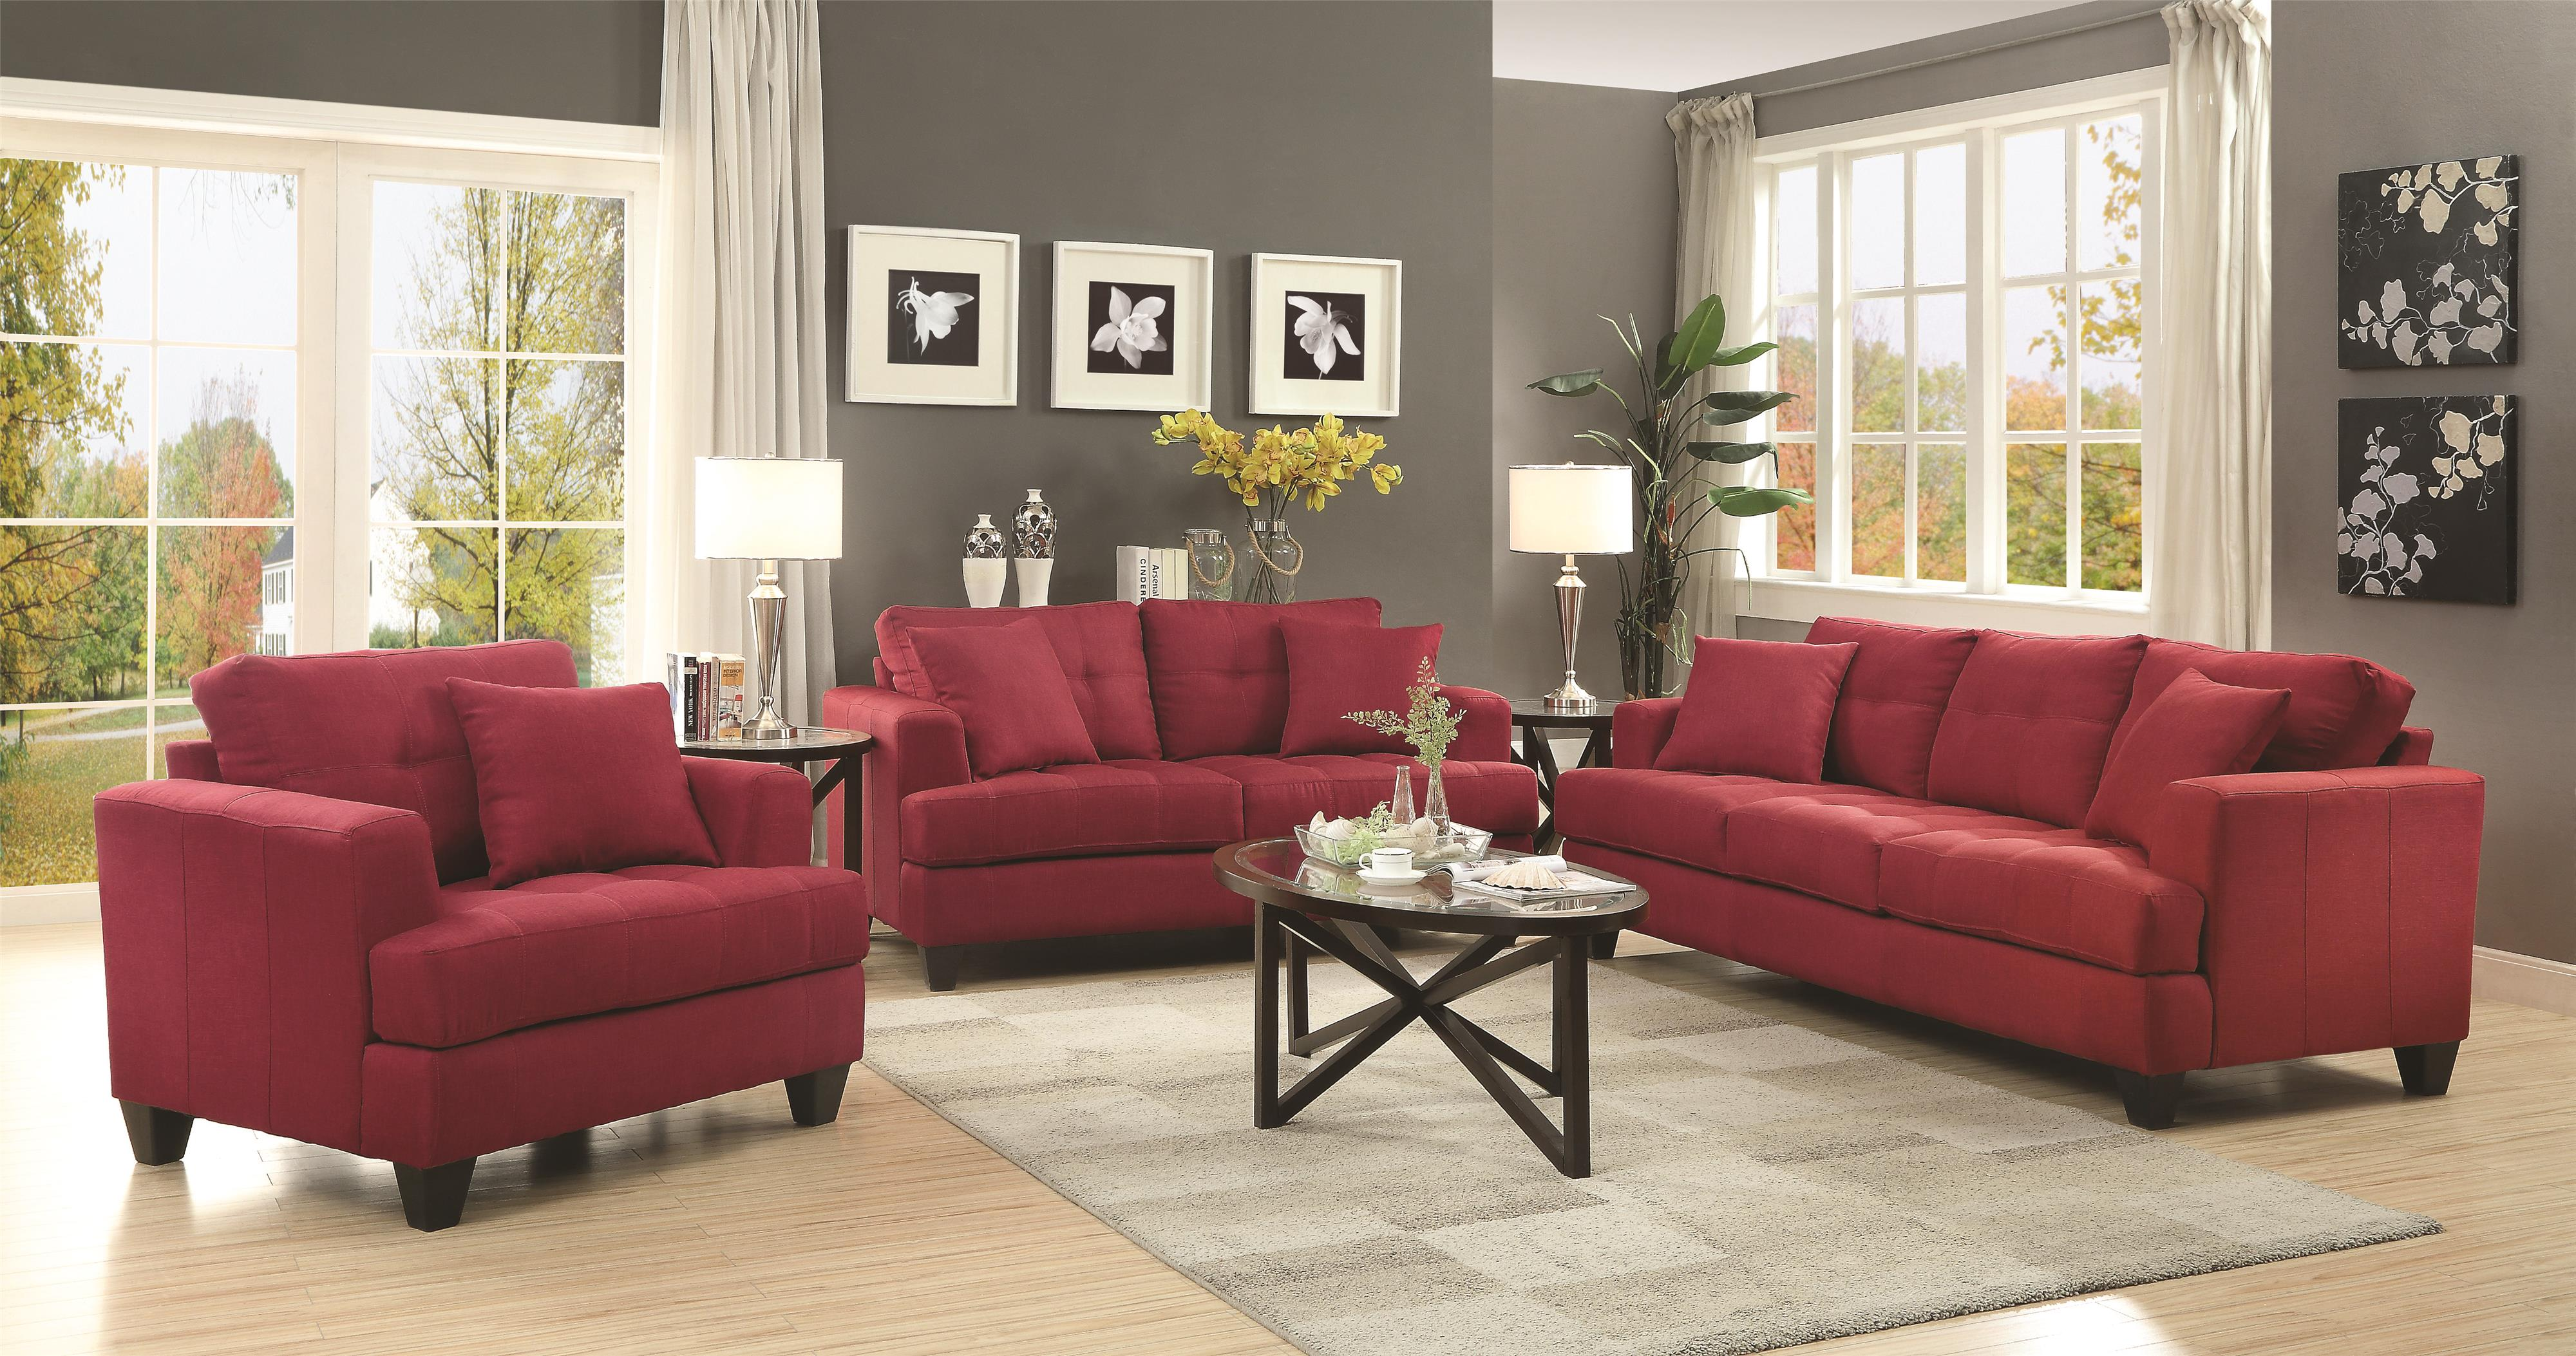 Coaster Samuel Sofa Stationary Living Room Group - Item Number: 50518 Living Room Group 1